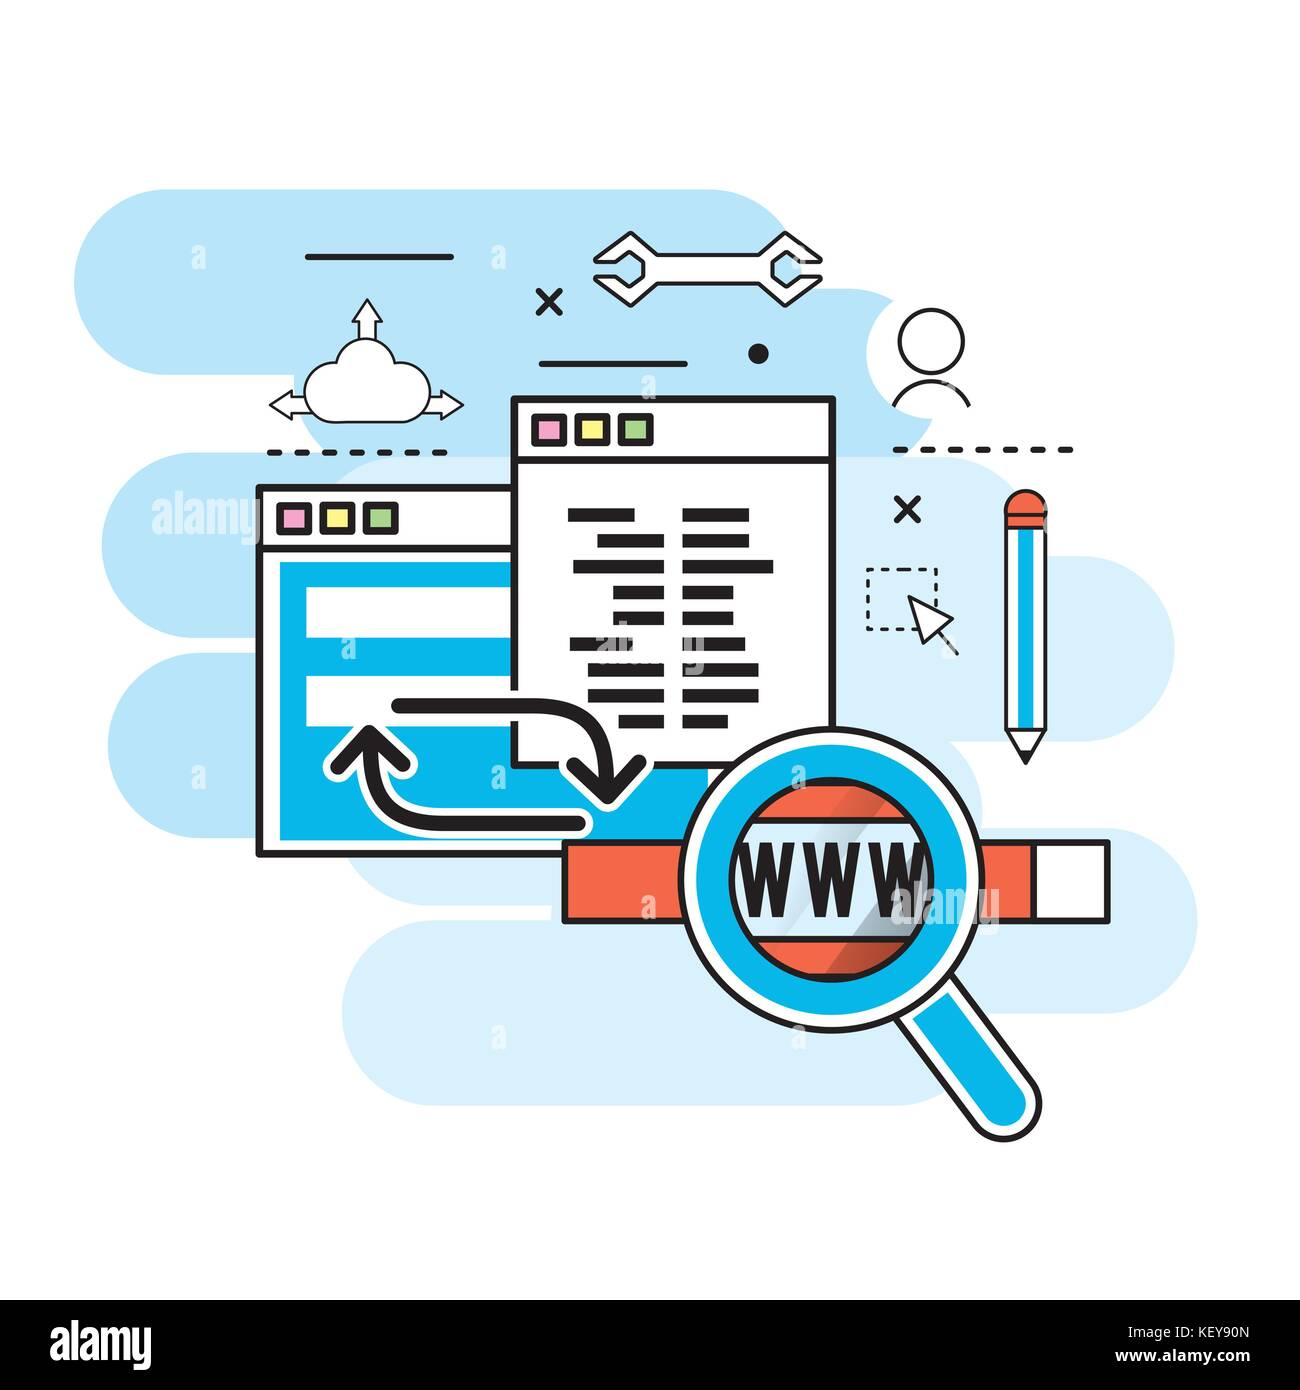 website process information to programming technology - Stock Image